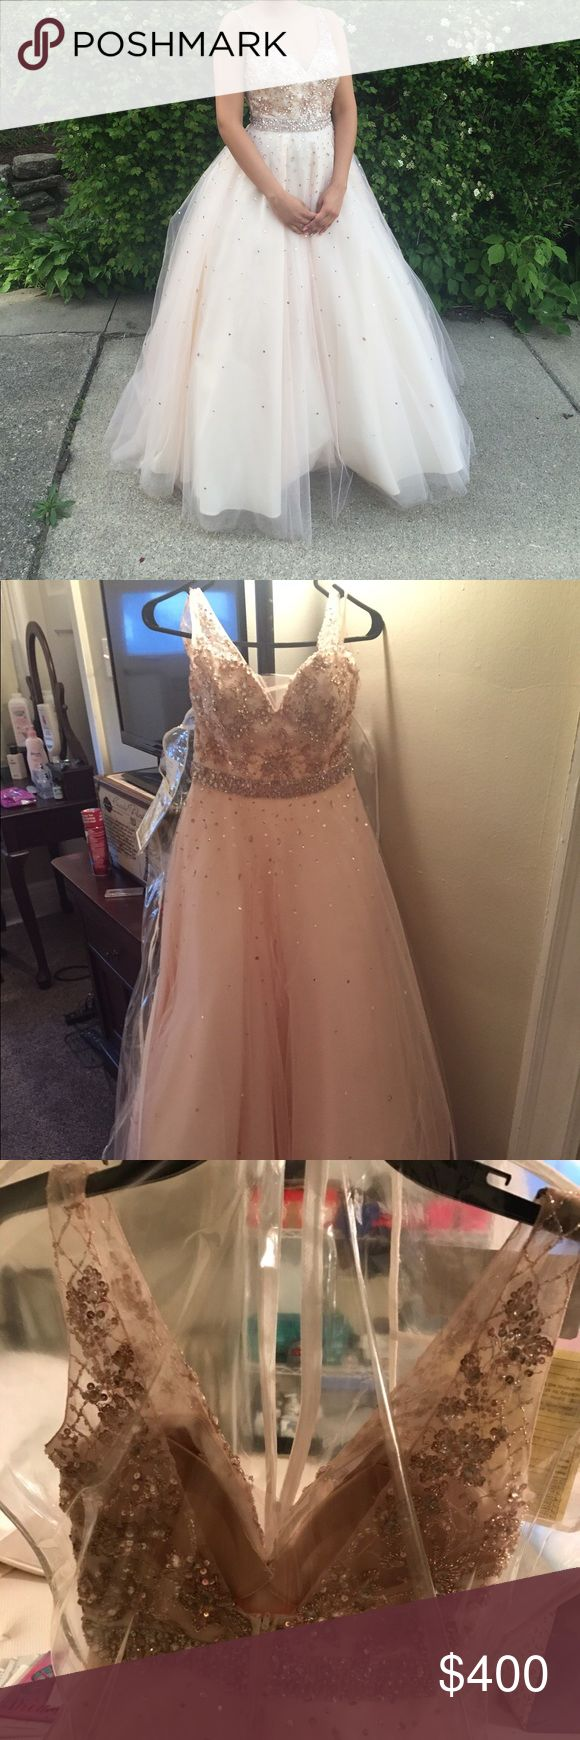 Moro Lee Prom Dress Size 8 Size 8, only wore once, still in plastic zip cover. The beautiful jewels are still in place! No dirt, practically new. Mori Lee Dresses Prom